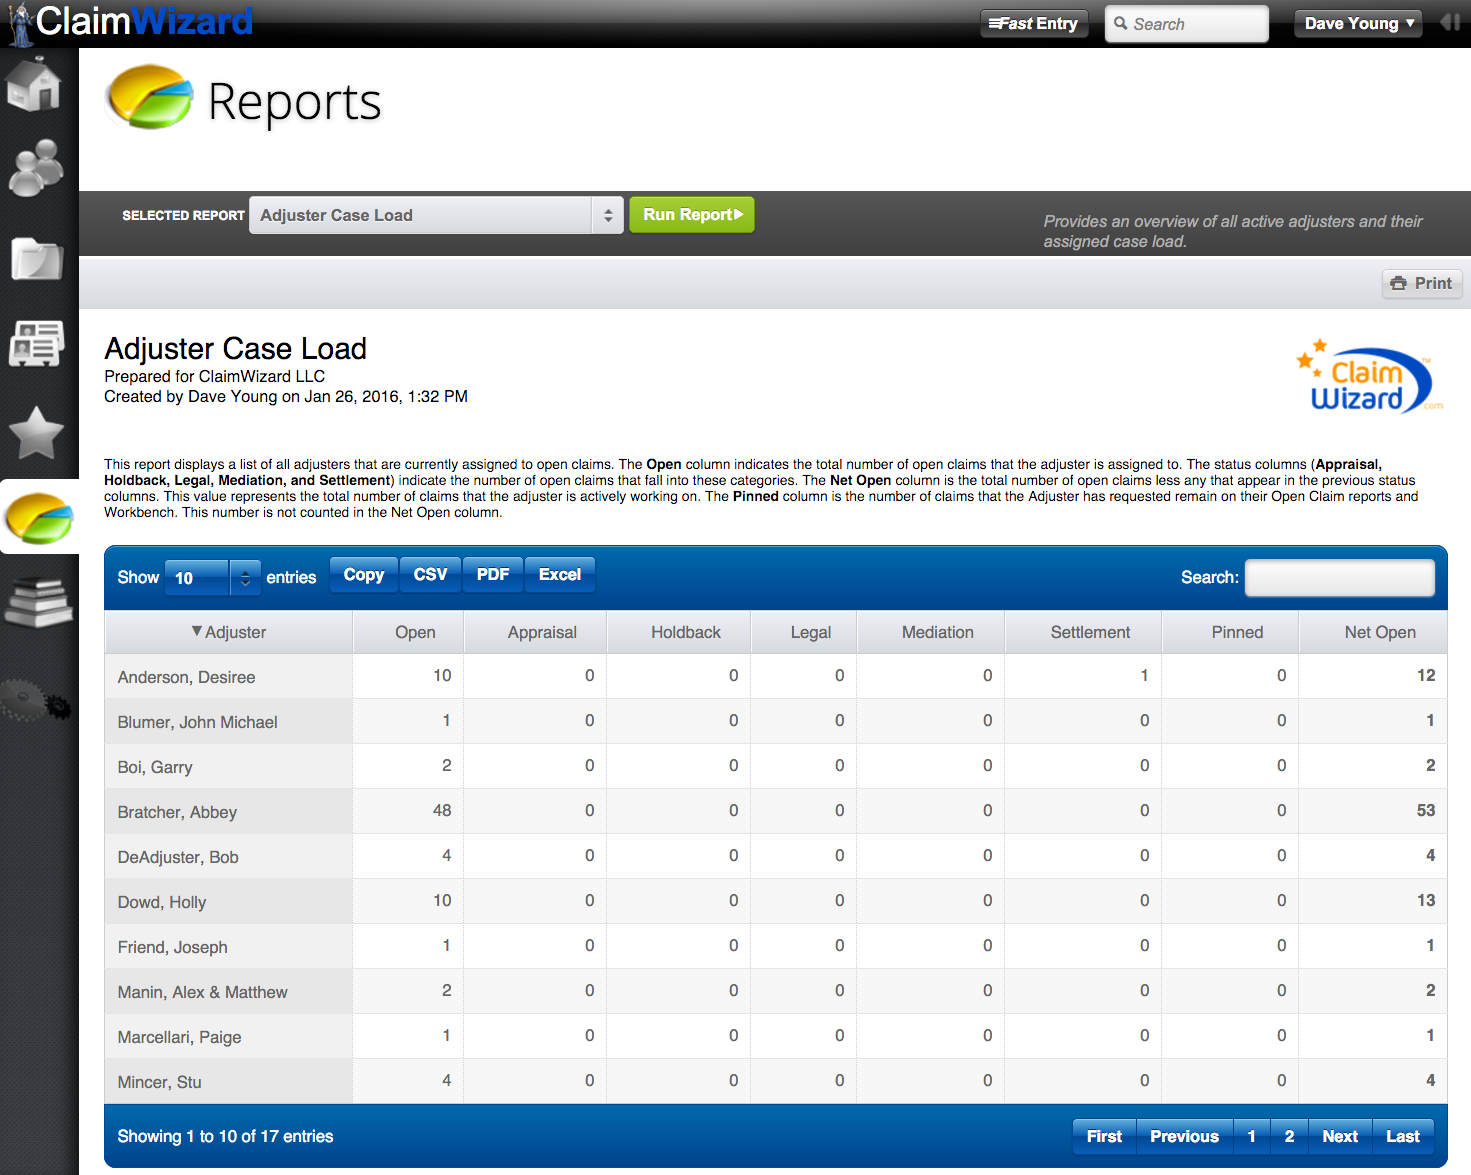 ClaimWizard - Reports Tab - Open Report